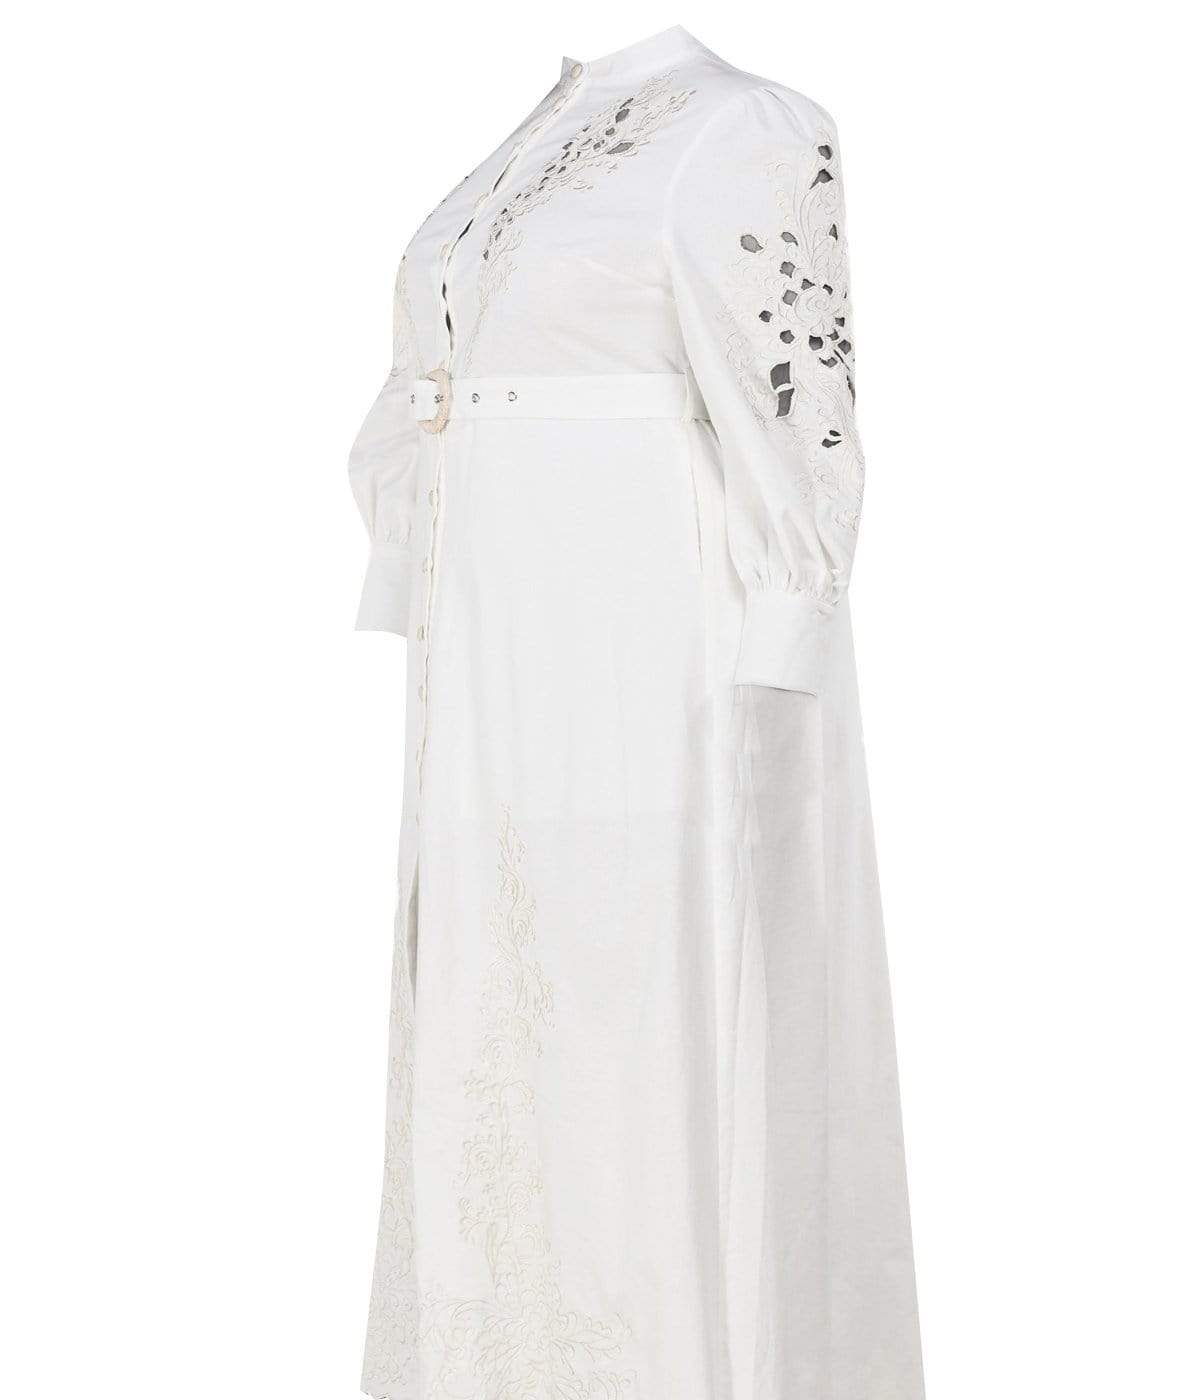 White Linen Blend Maxi Dress - Posh Shoppe